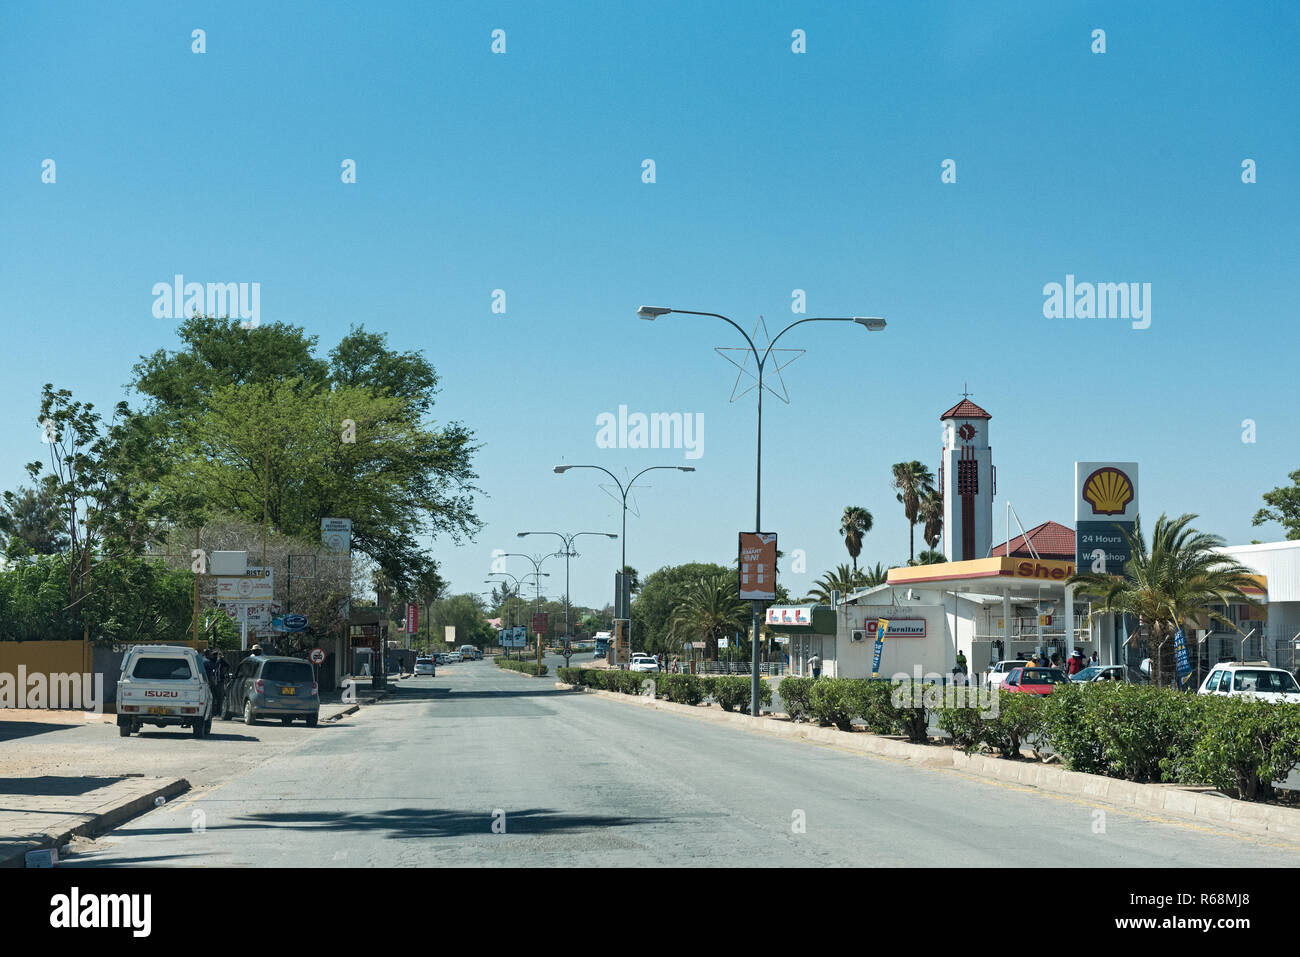 main street in the city of gobabis in the east of namibia - Stock Image